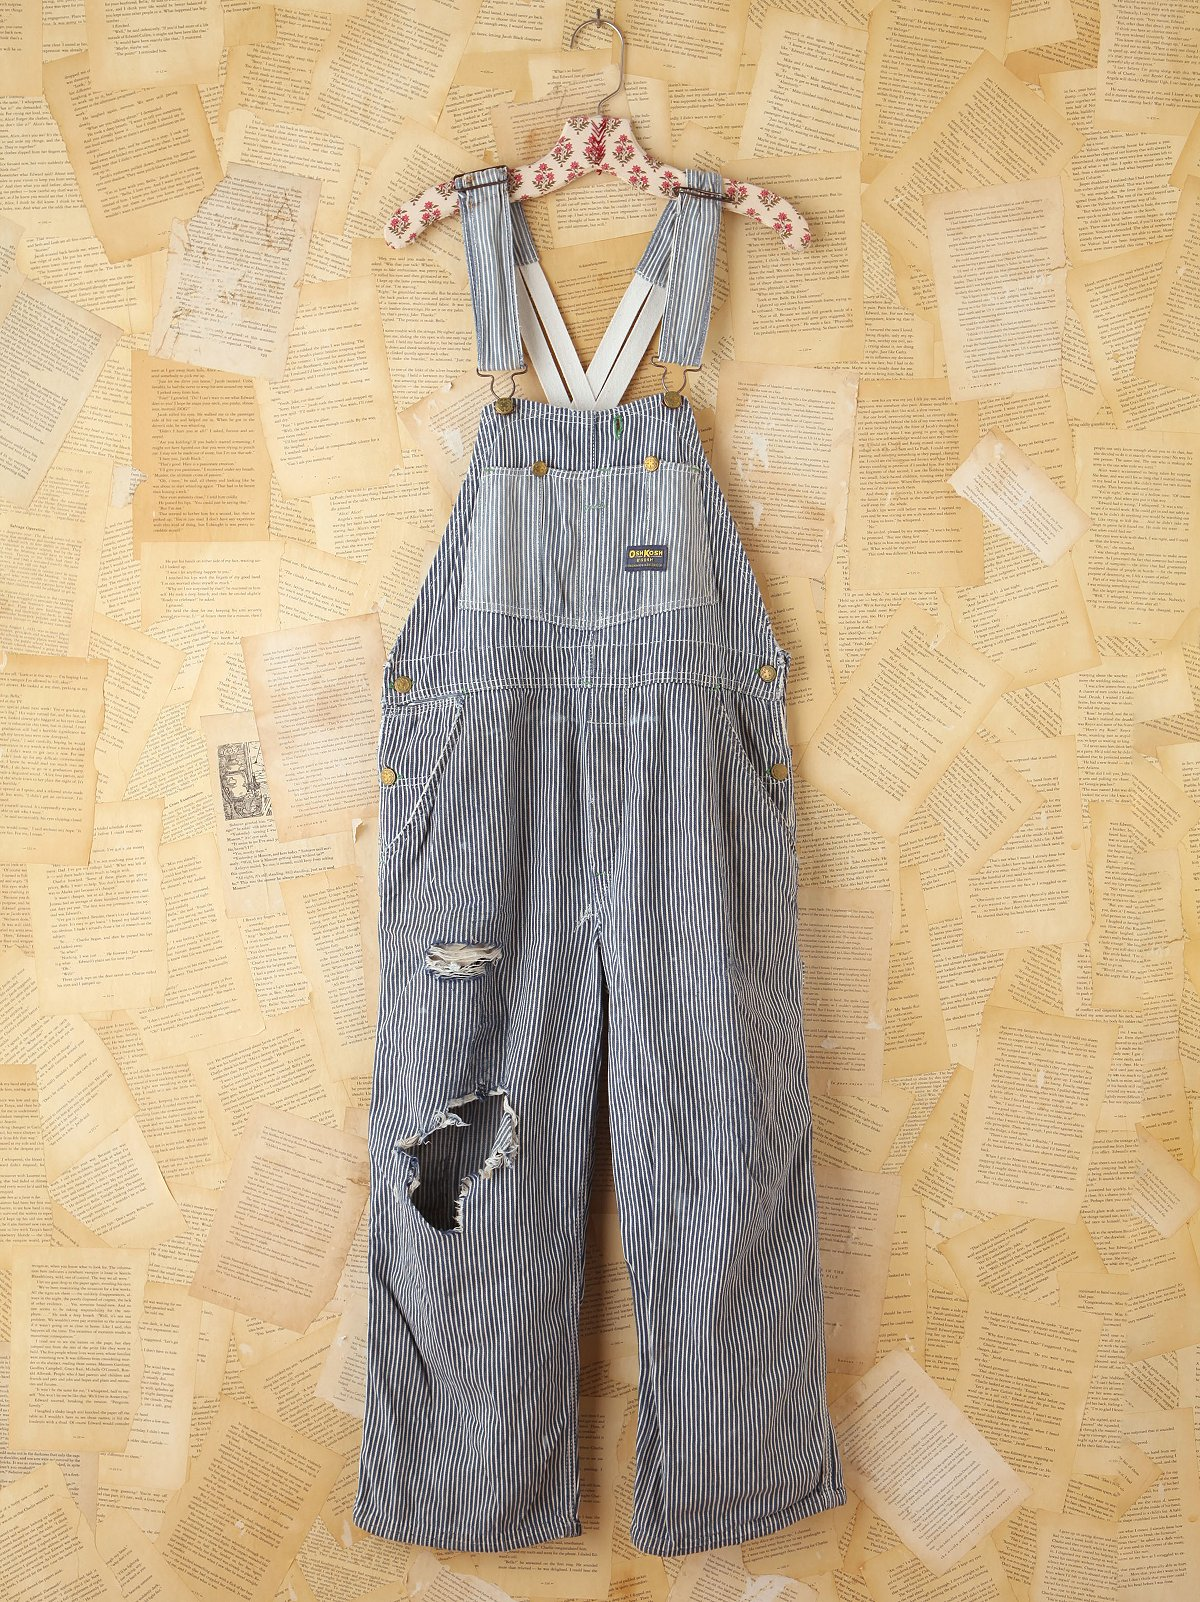 Vintage Osh Kosh Striped Denim Overall